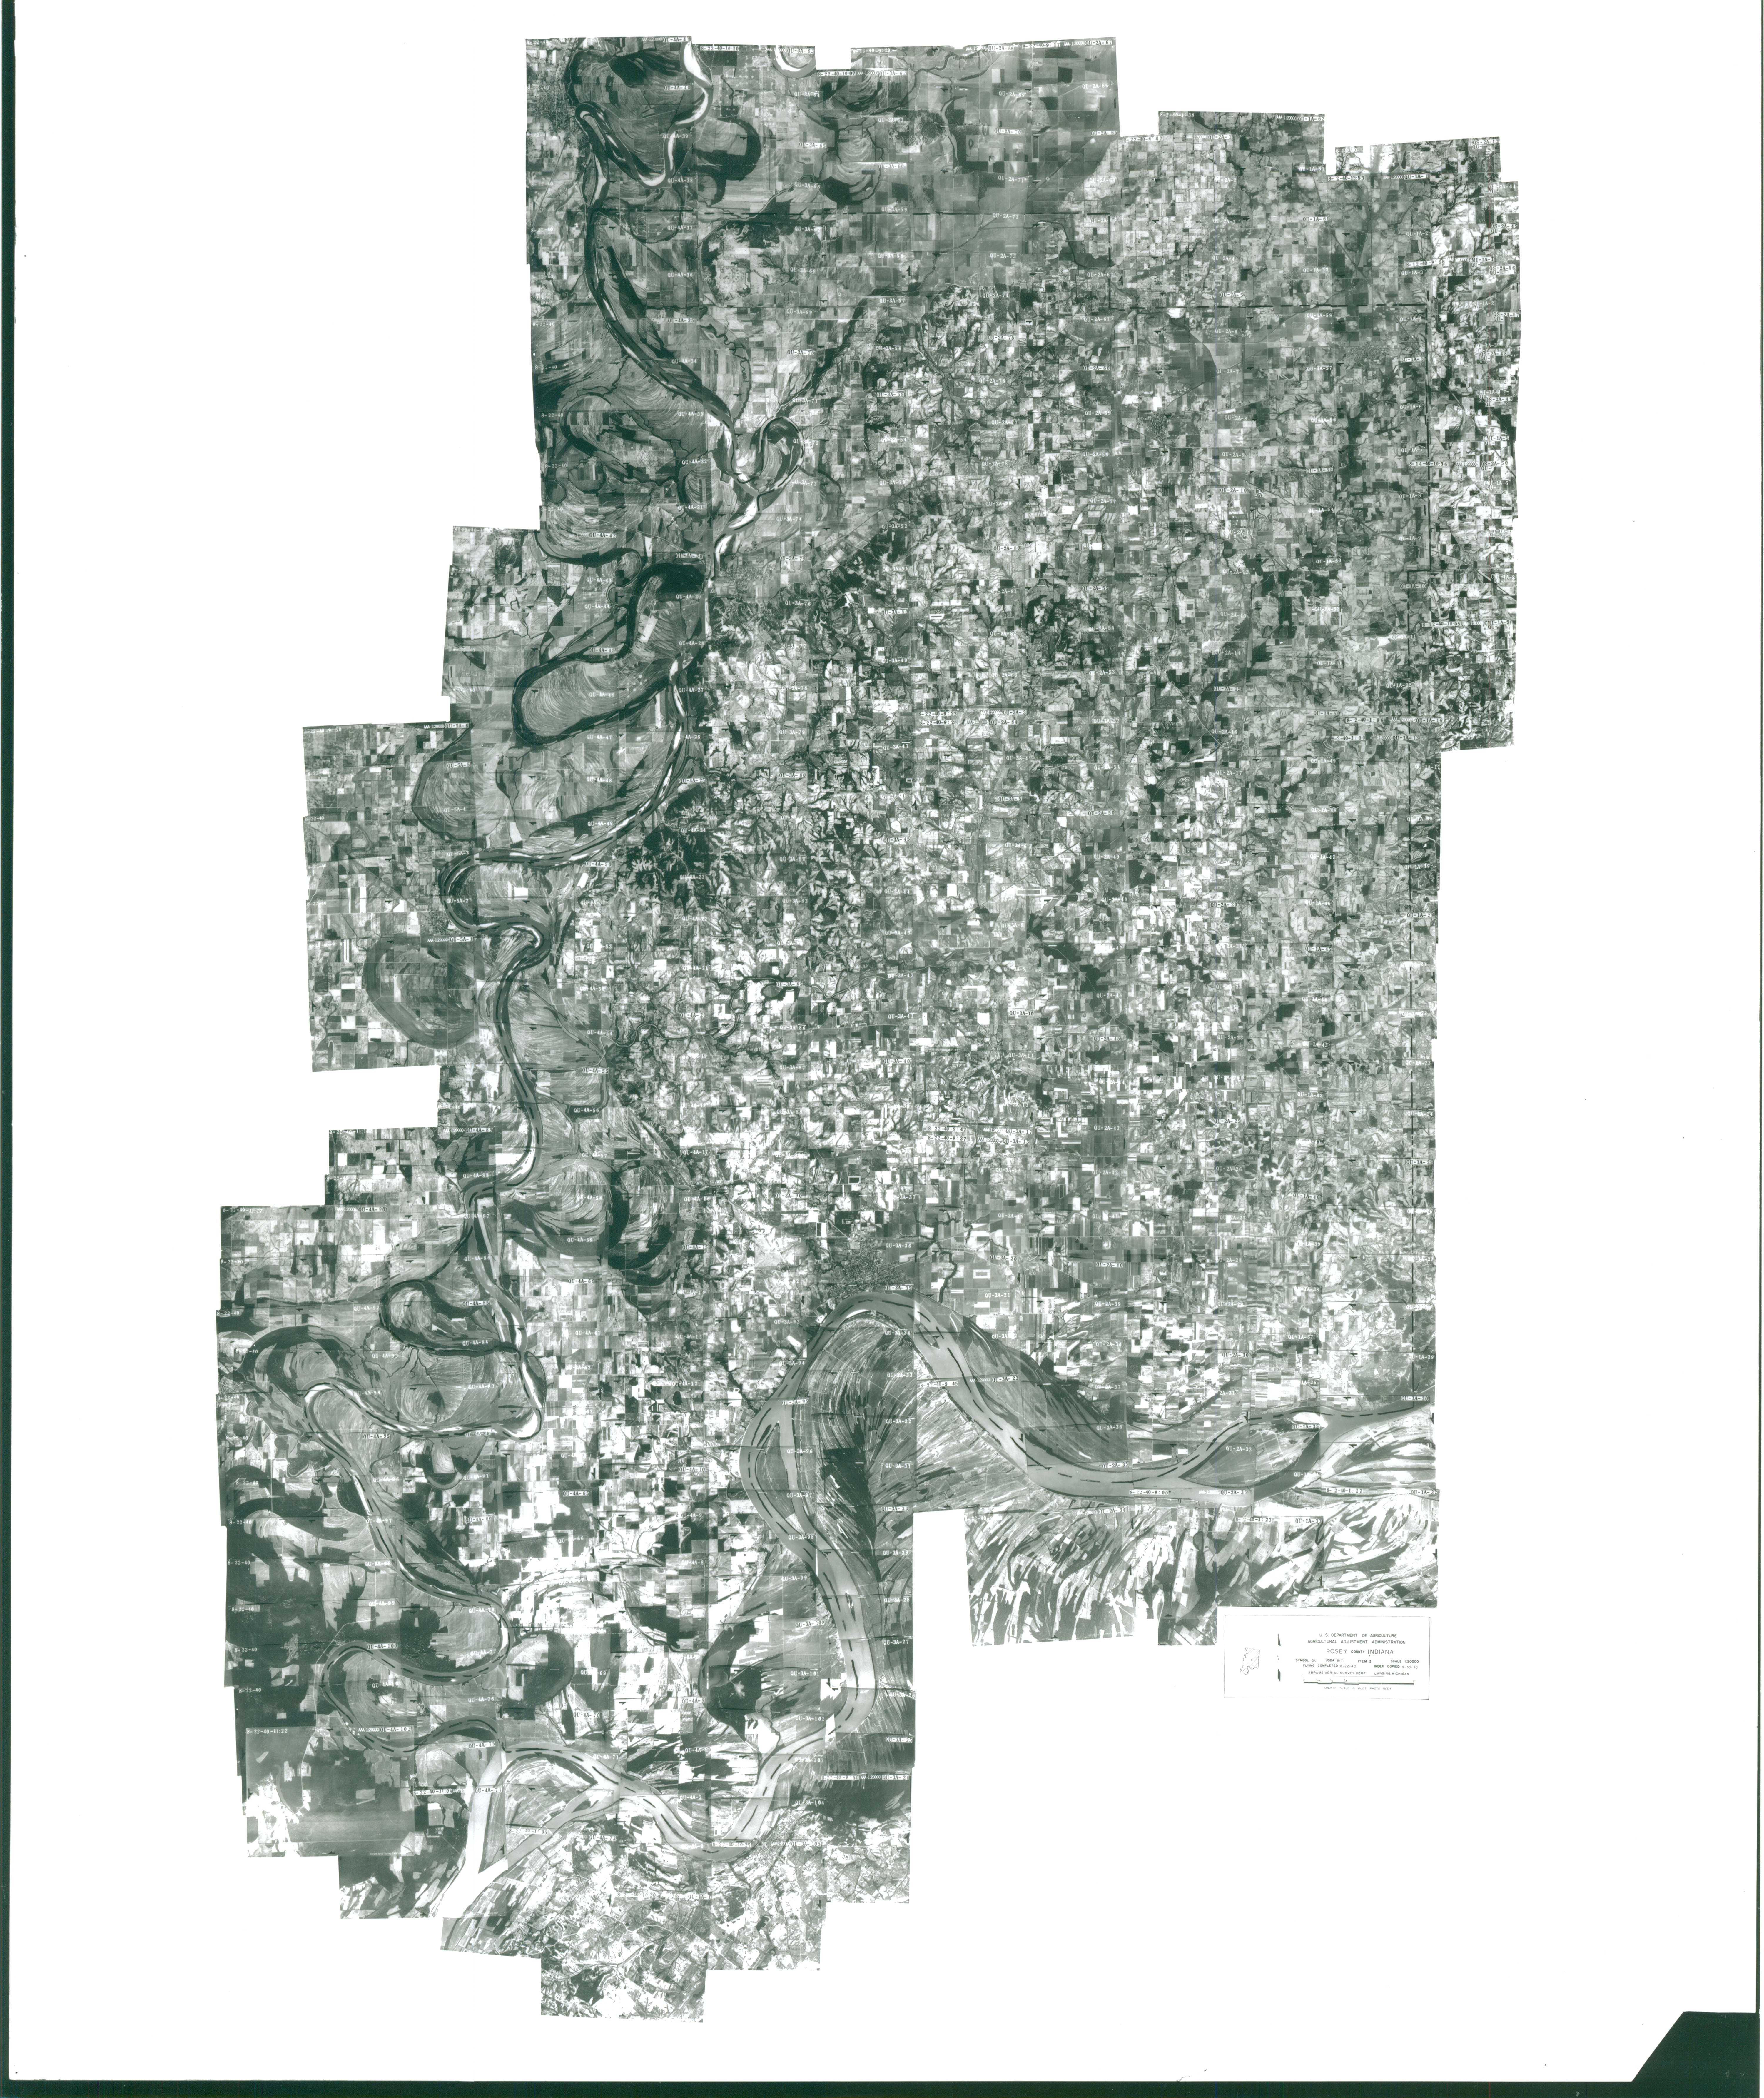 Index to Aerial Photography of Posey County, Indiana 1